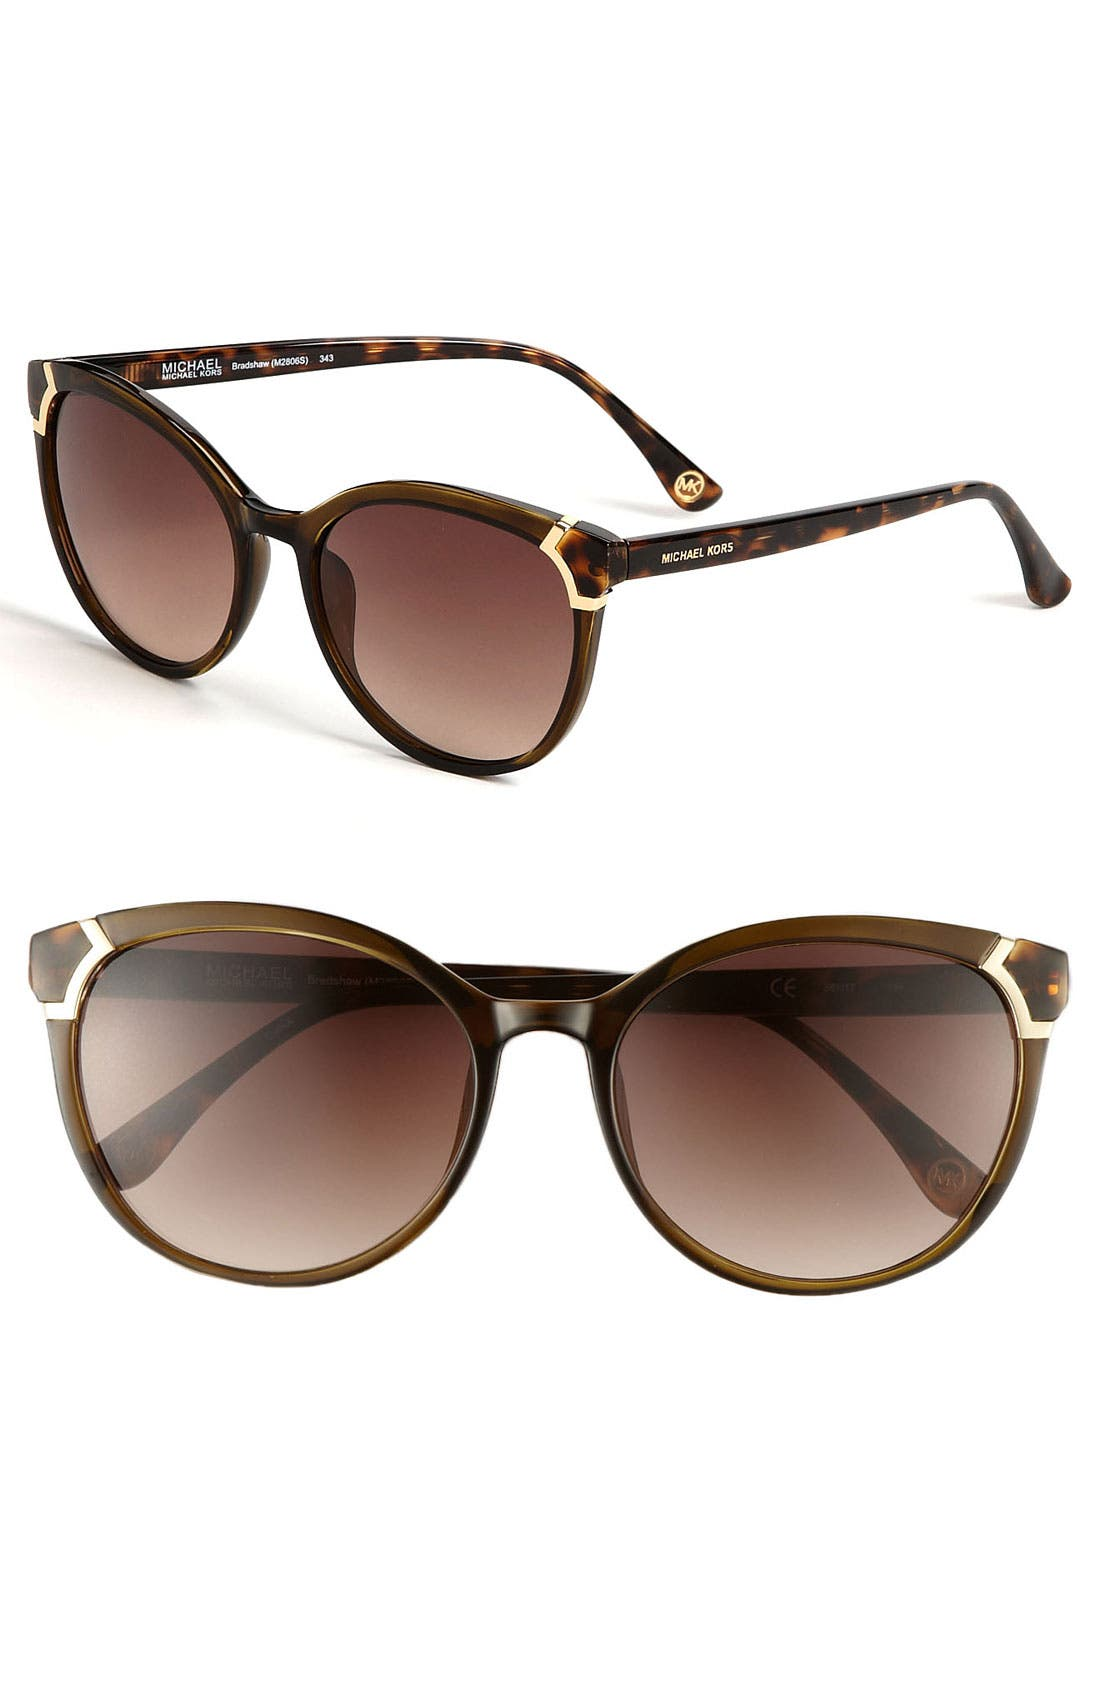 Main Image - MICHAEL Michael Kors 'Bradshaw' 55mm Sunglasses